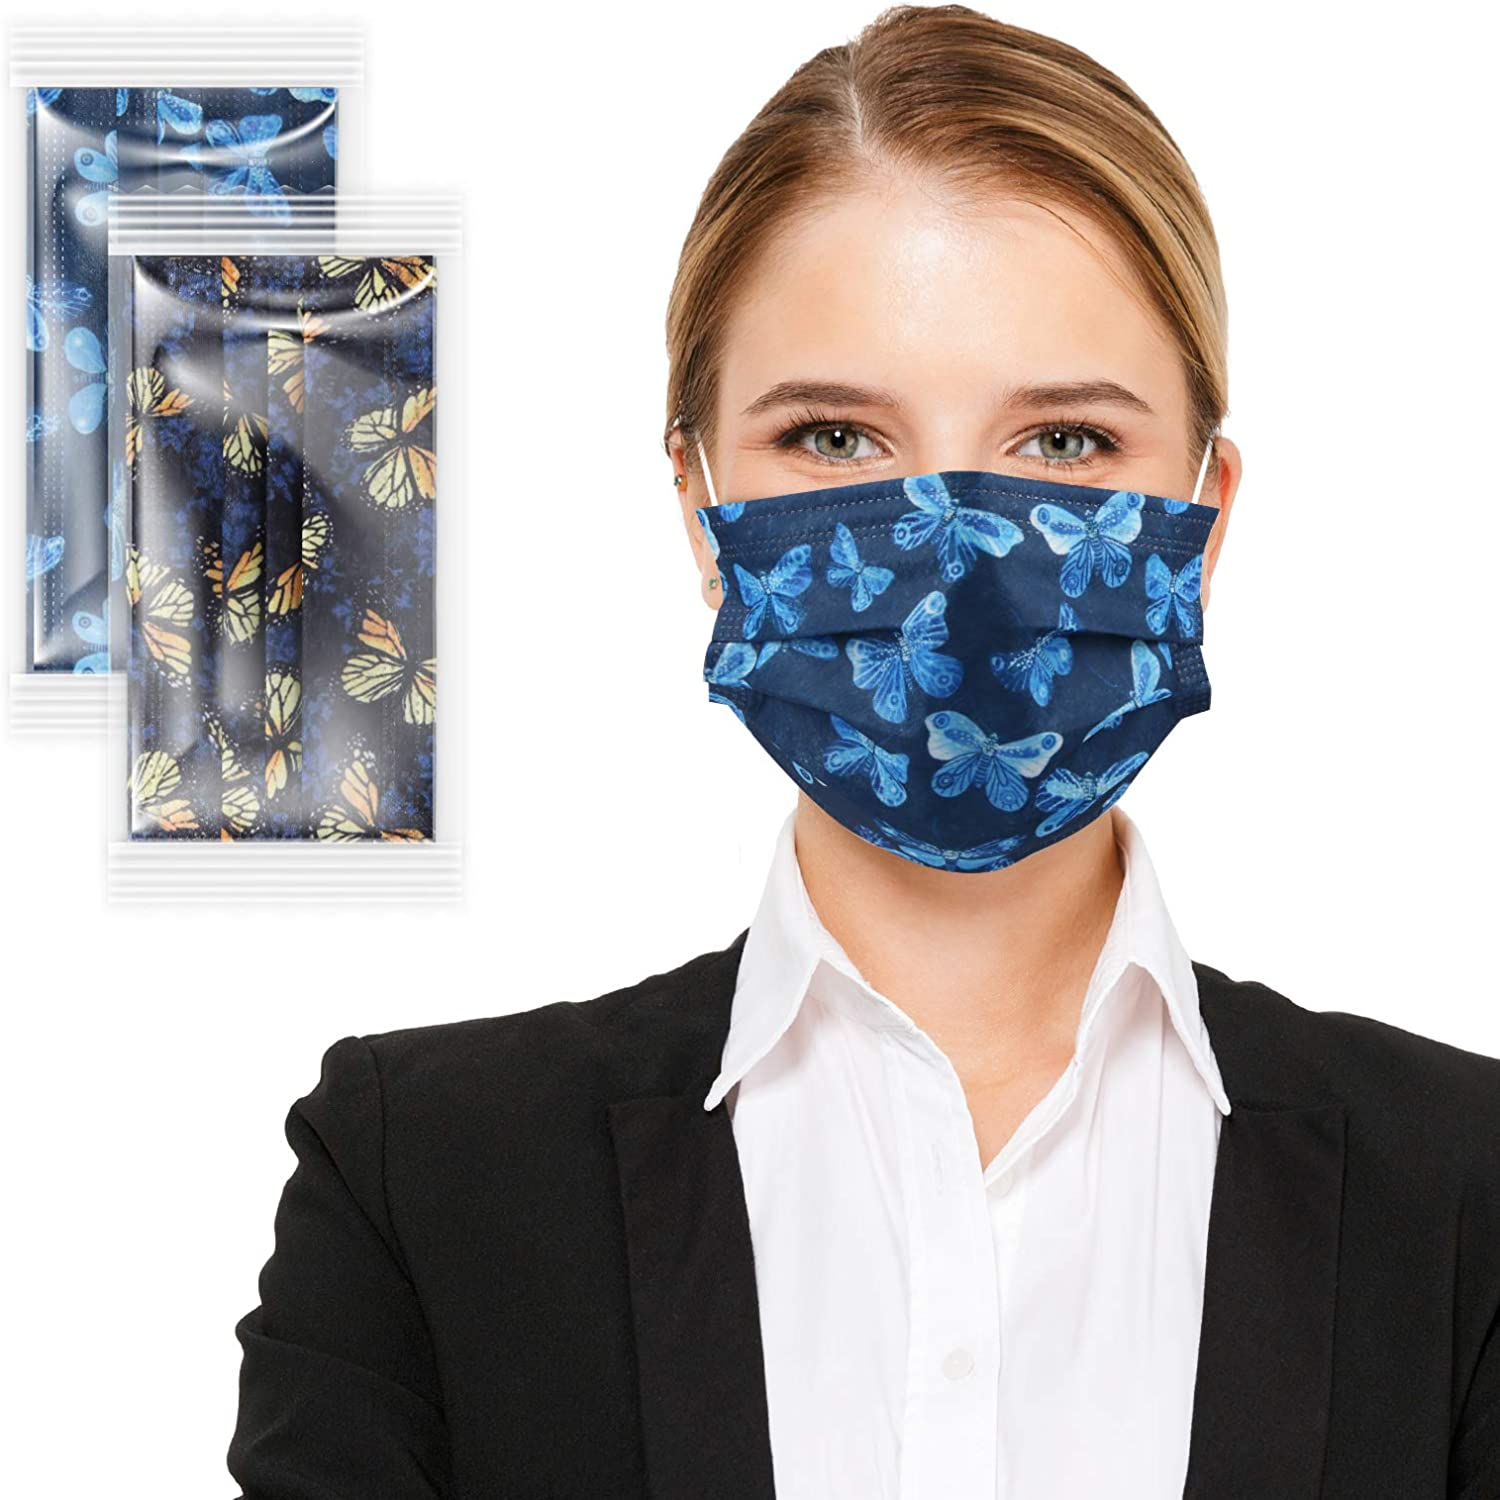 TIANLU Colored Printed Disposable Face Masks with Designs,Individually Wrapped Pack of 20 Pcs,Tie Dye Patterned 3-layer Non-Woven Face Mask (Blue Butterfly)